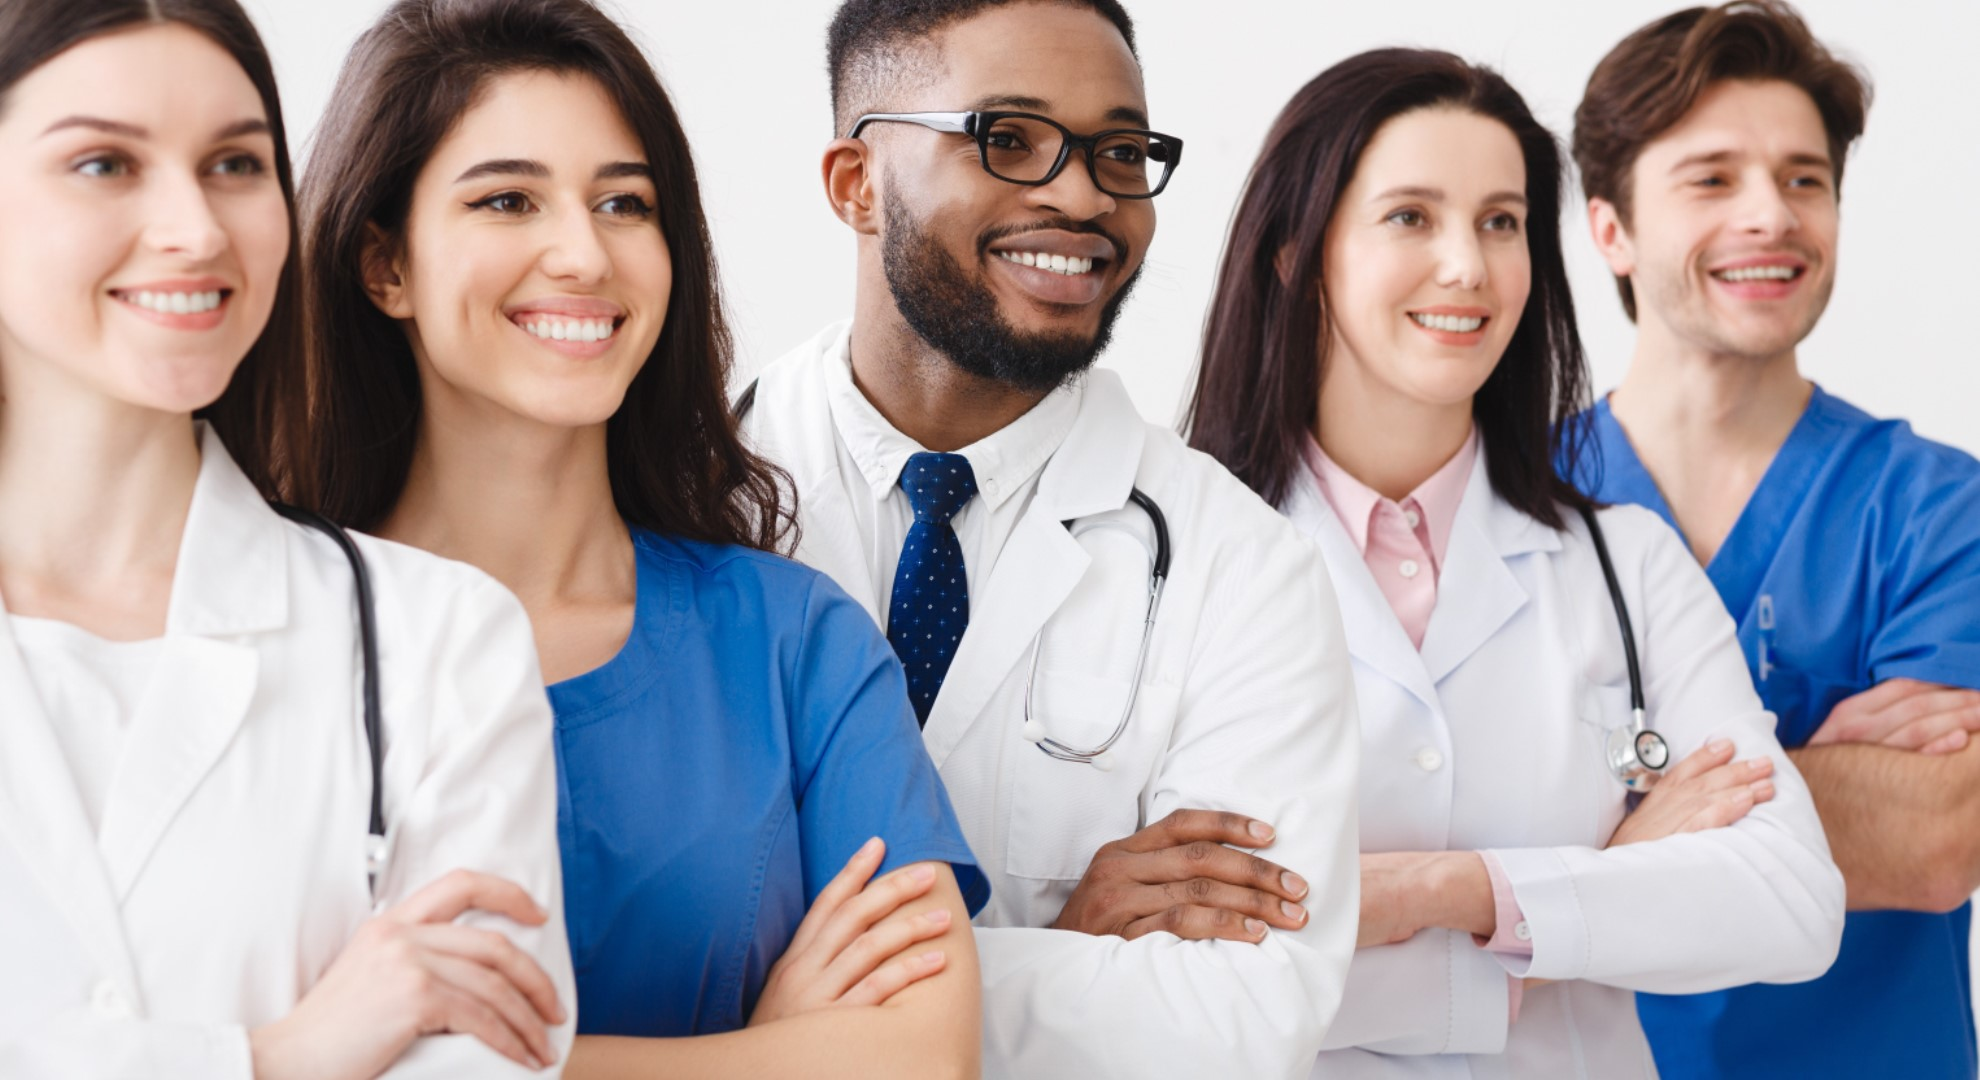 Young Professional Doctors Standing Together In Laboratory